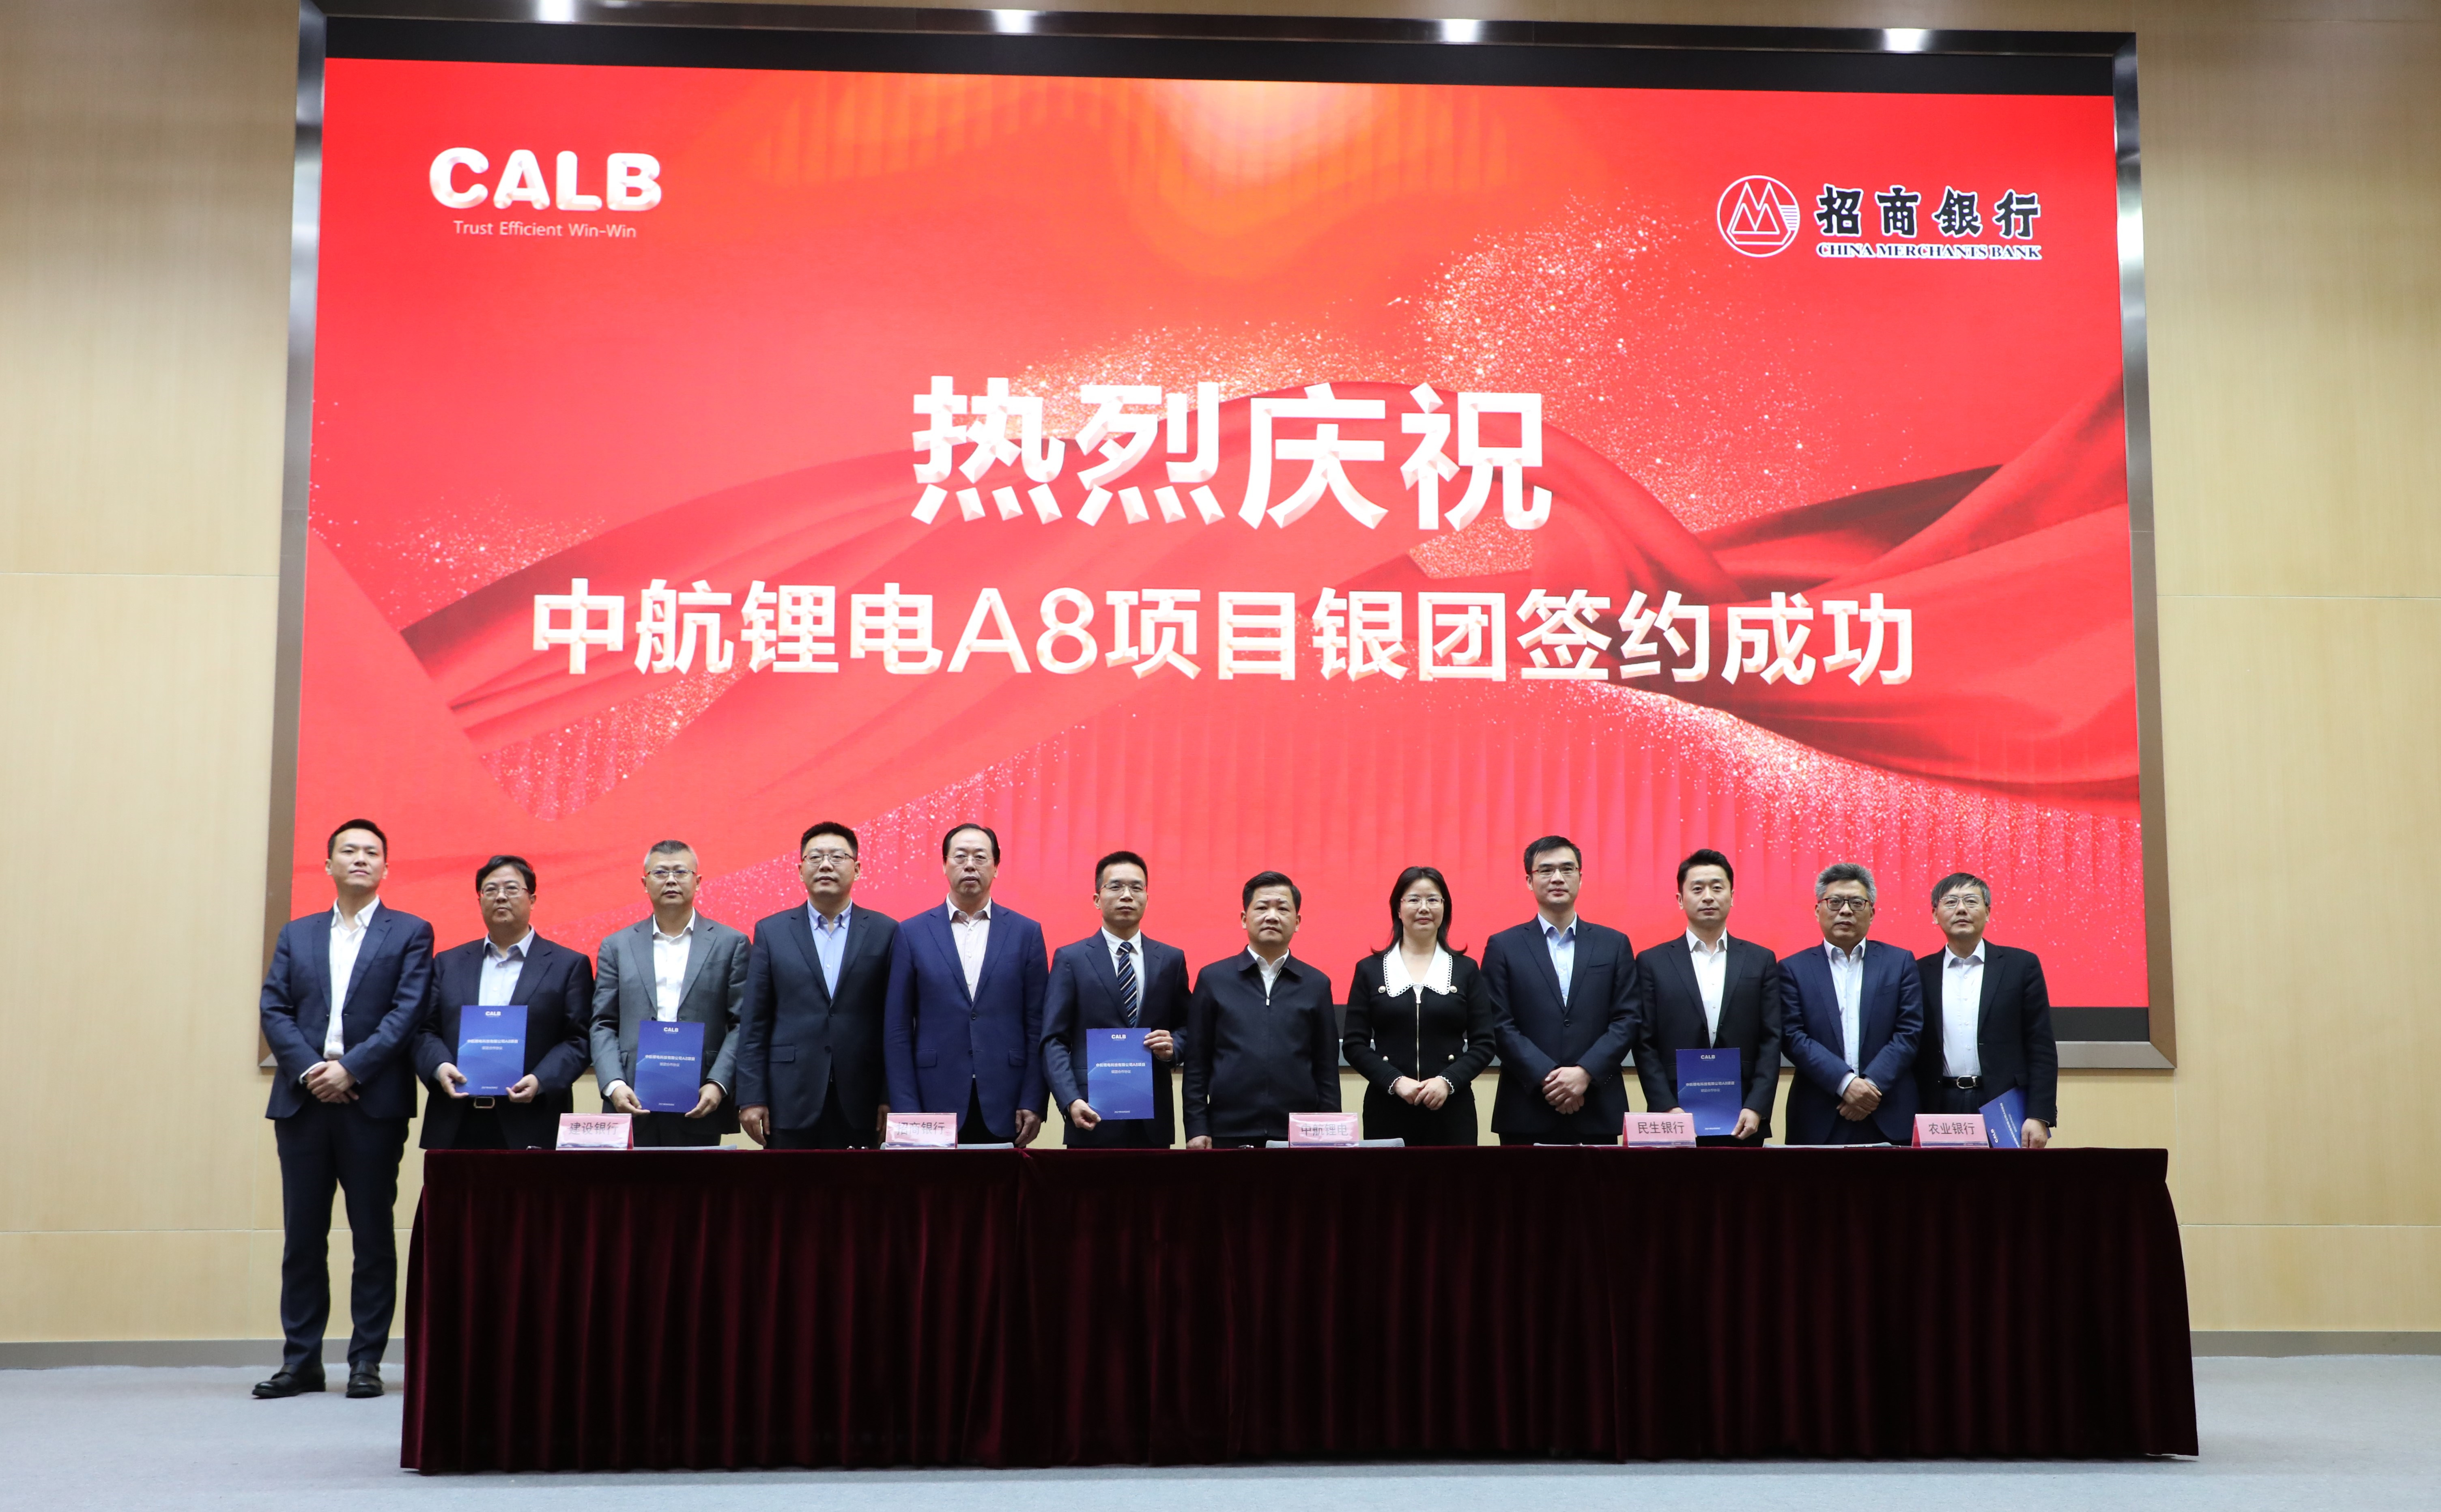 Successful Signing of Agreement between CALB and Consortium for the A8 Project